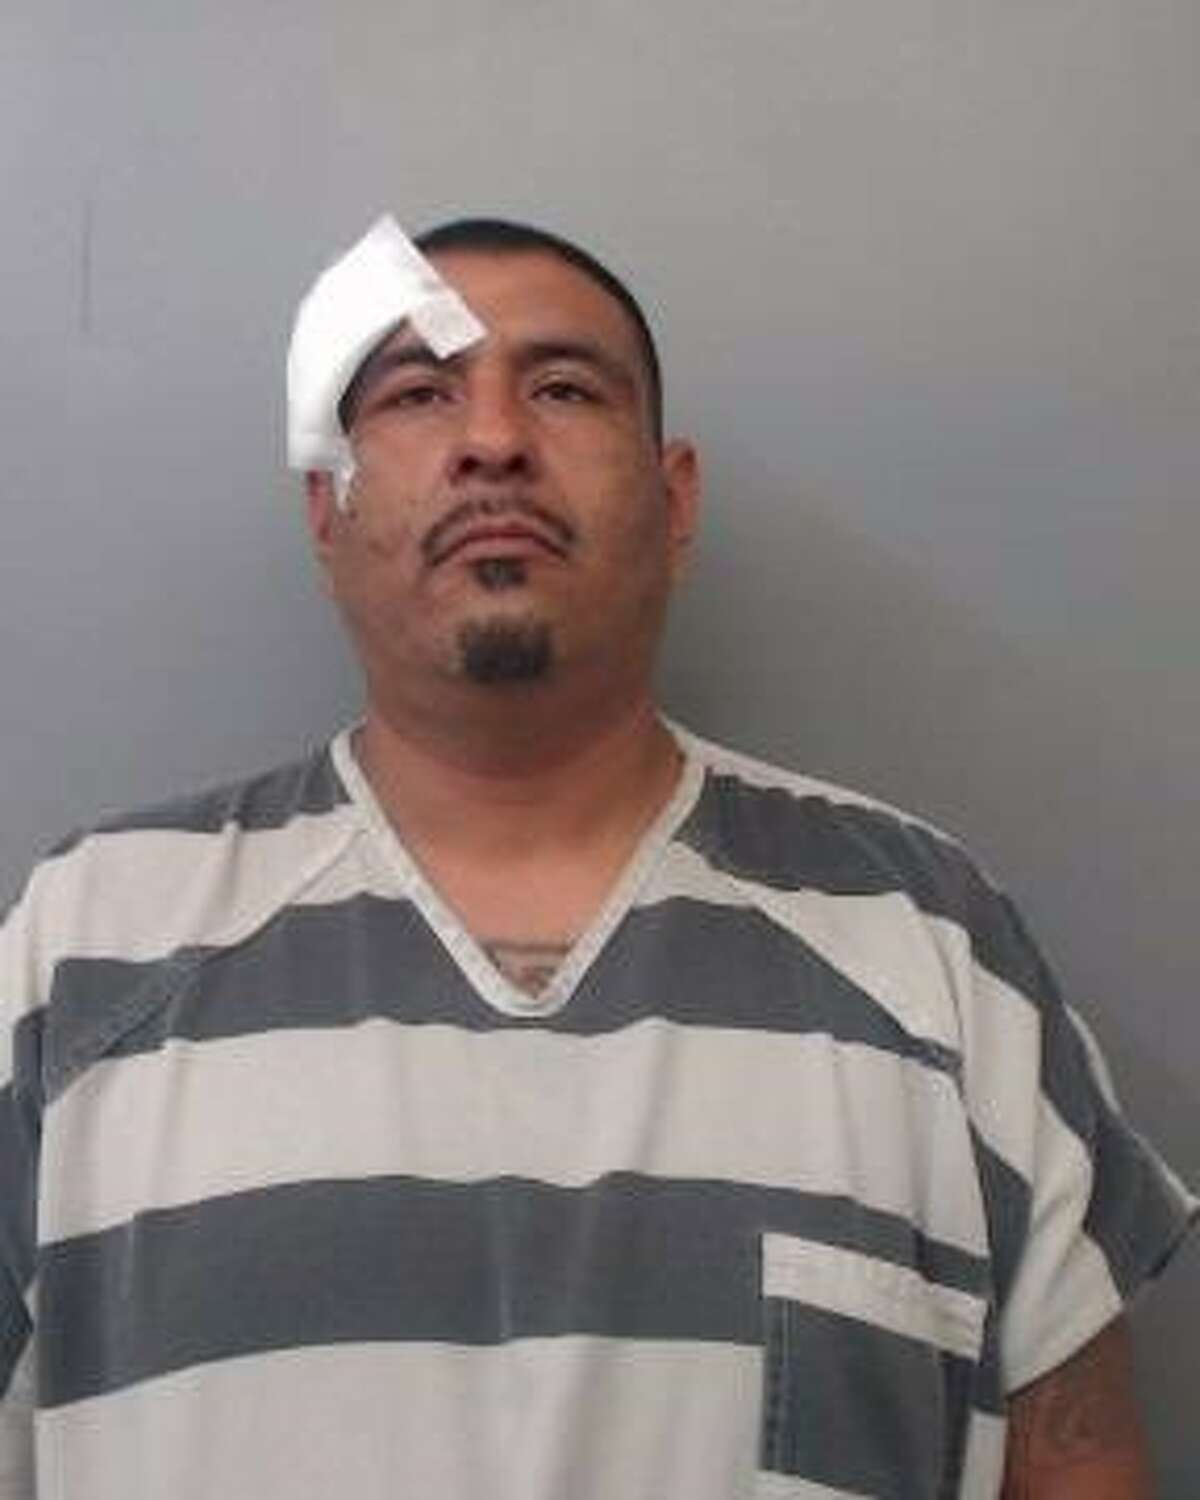 Juan Antonio Lira, 37, was charged with possession of a controlled substance.